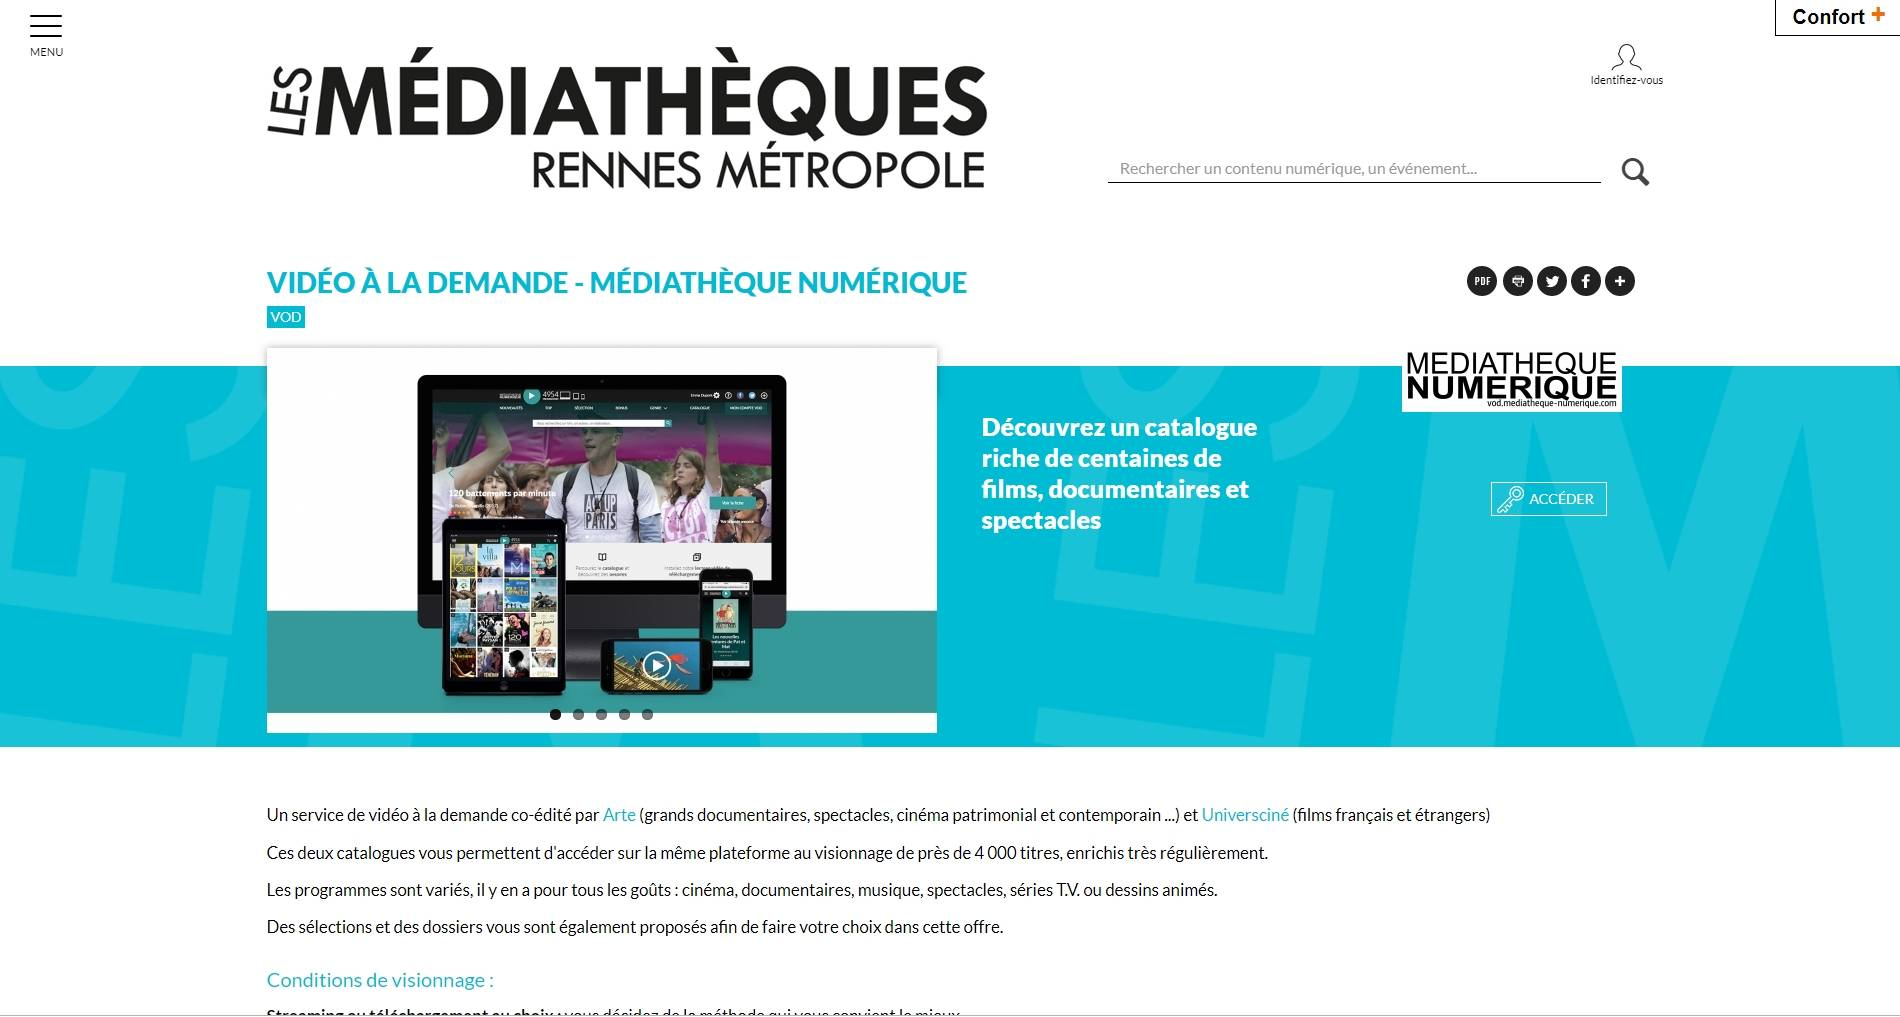 VOD-Mediatheques-Rennes